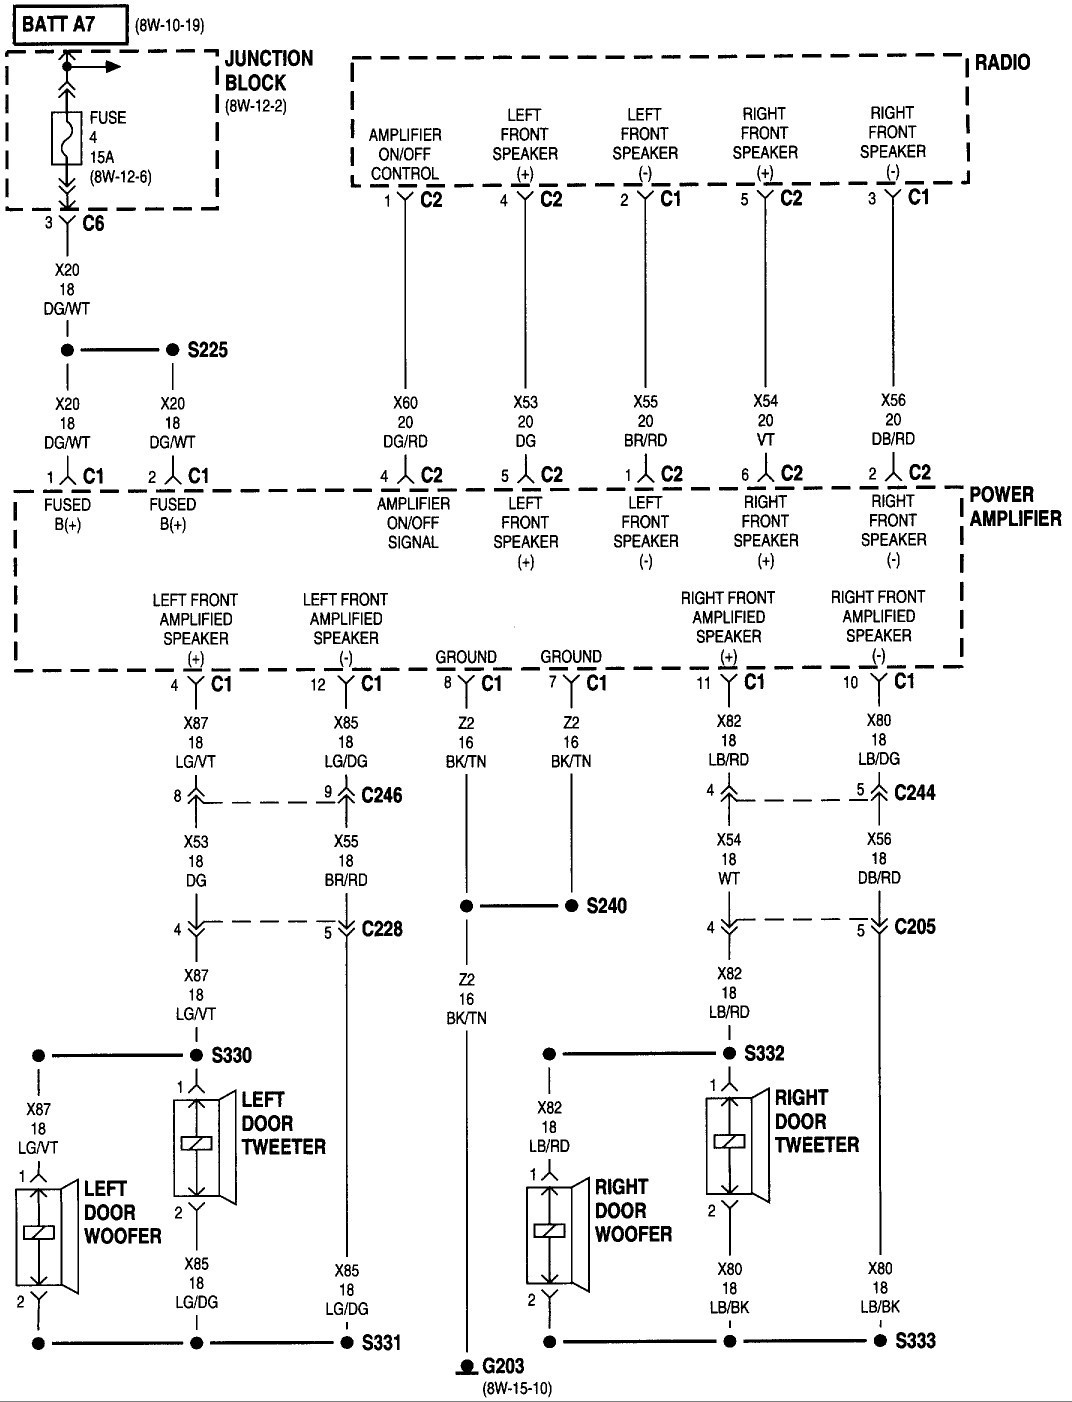 1992 dodge dakota ignition wiring diagram for defy gemini oven 1997 radio harness